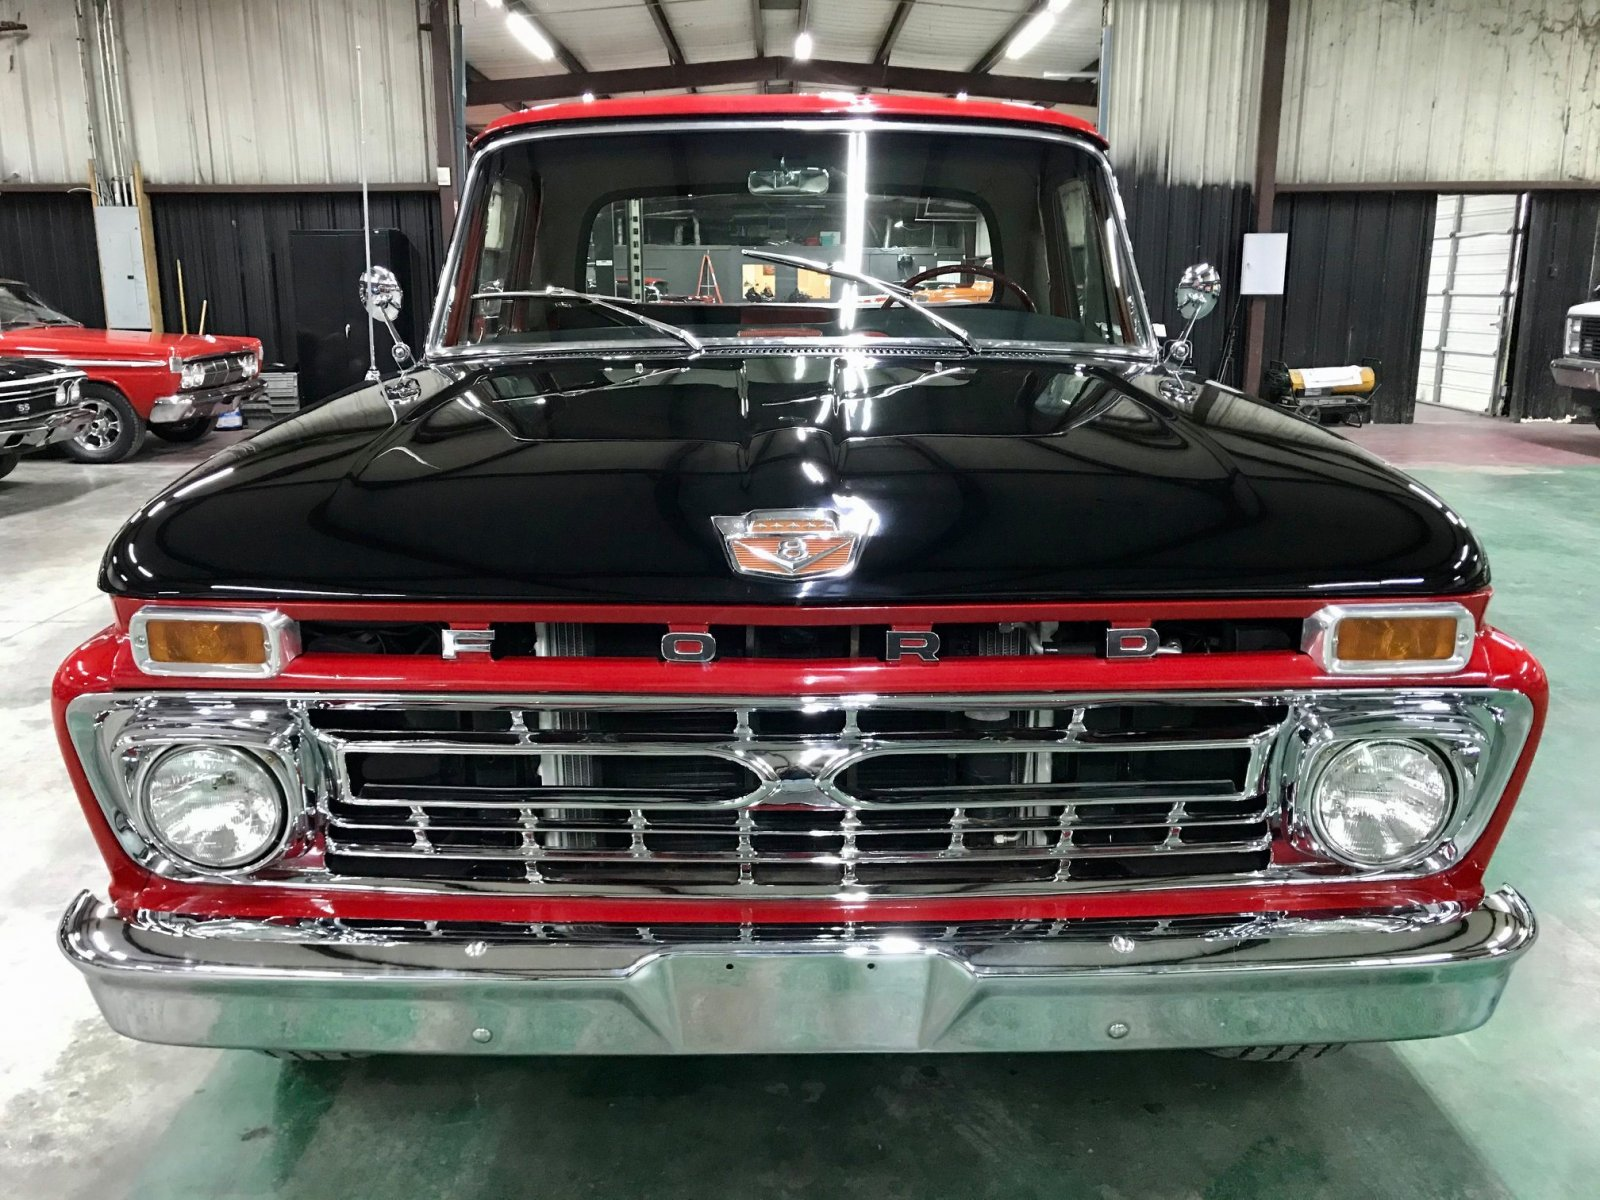 1966 Ford F-100 Custom Cab 429ci Big Block V8 8.jpg